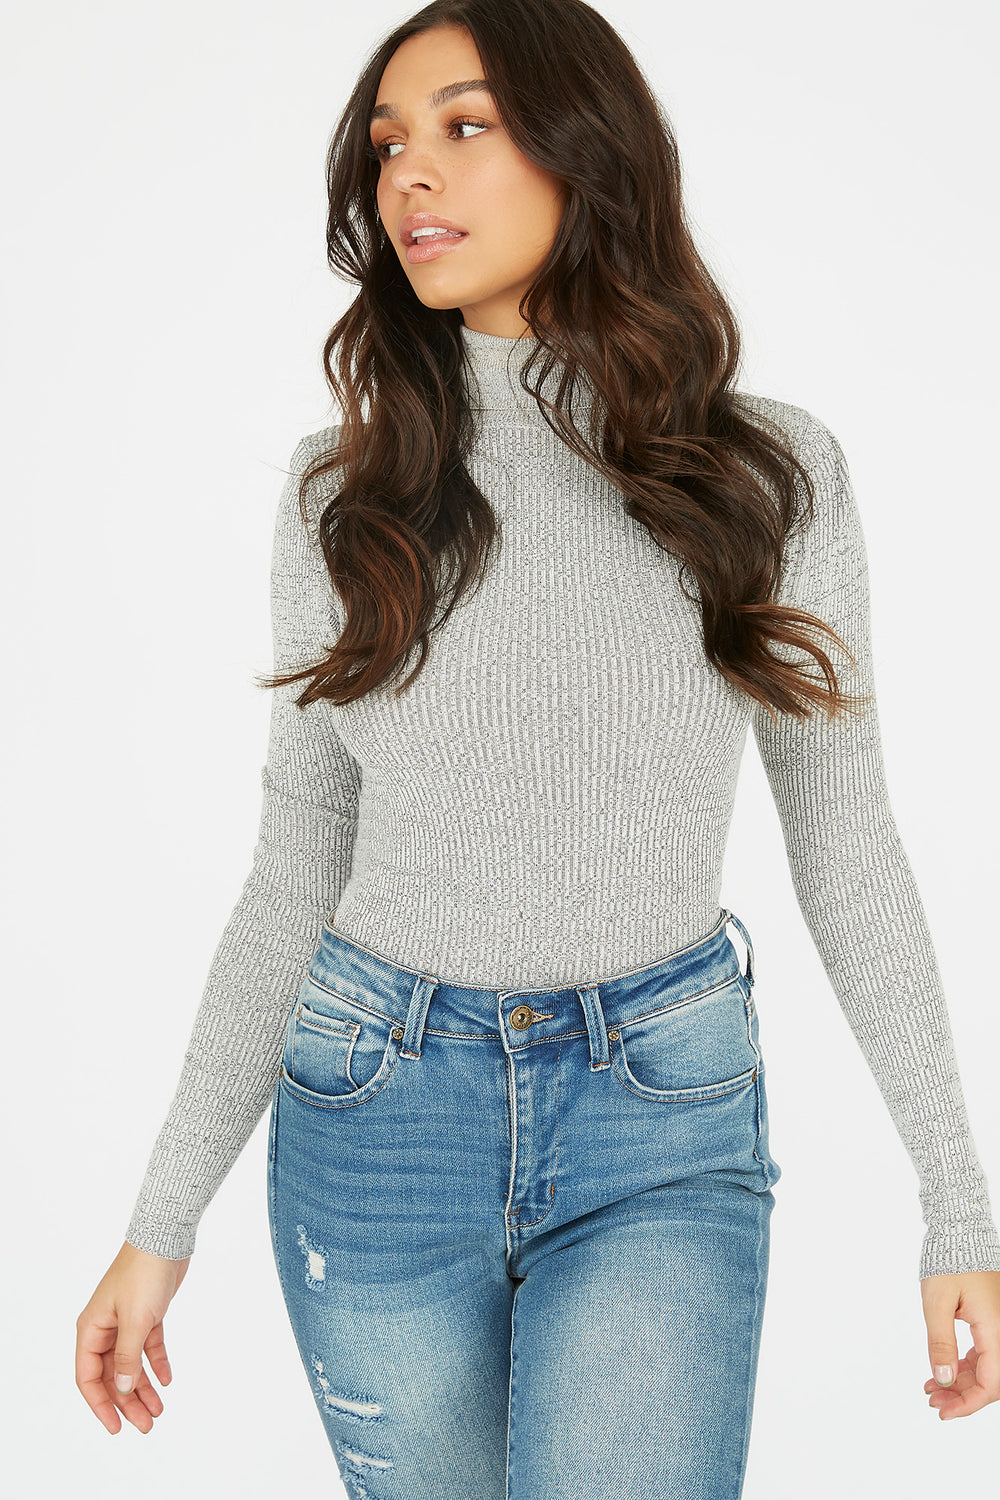 Turtleneck Ribbed Long Sleeve Sweater Black with White